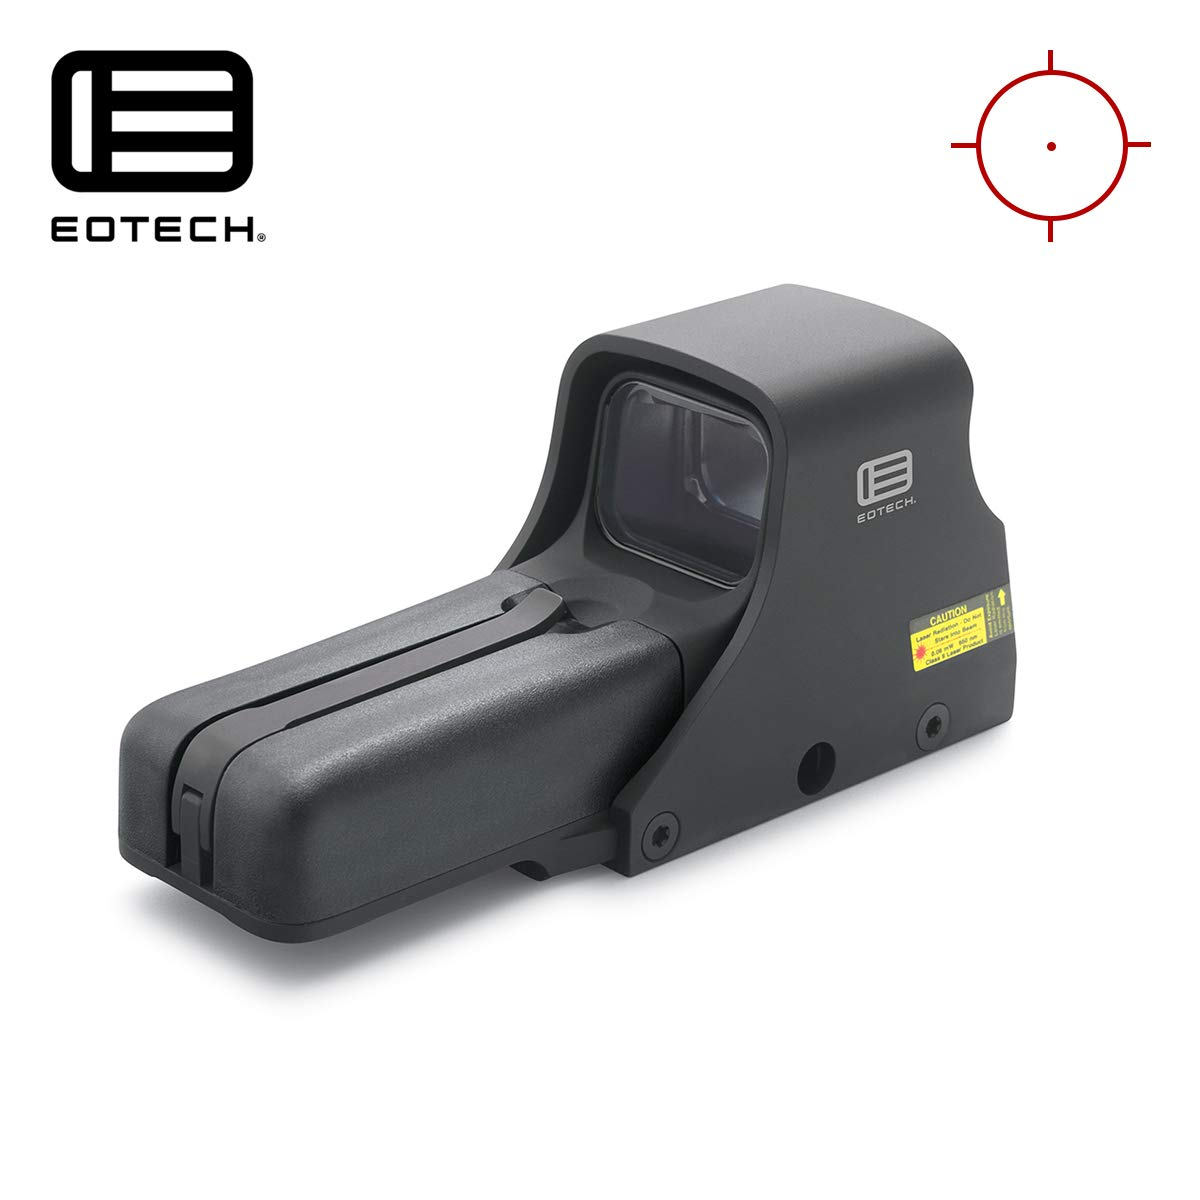 2. EOTech 512 Holographic Weapon Sight